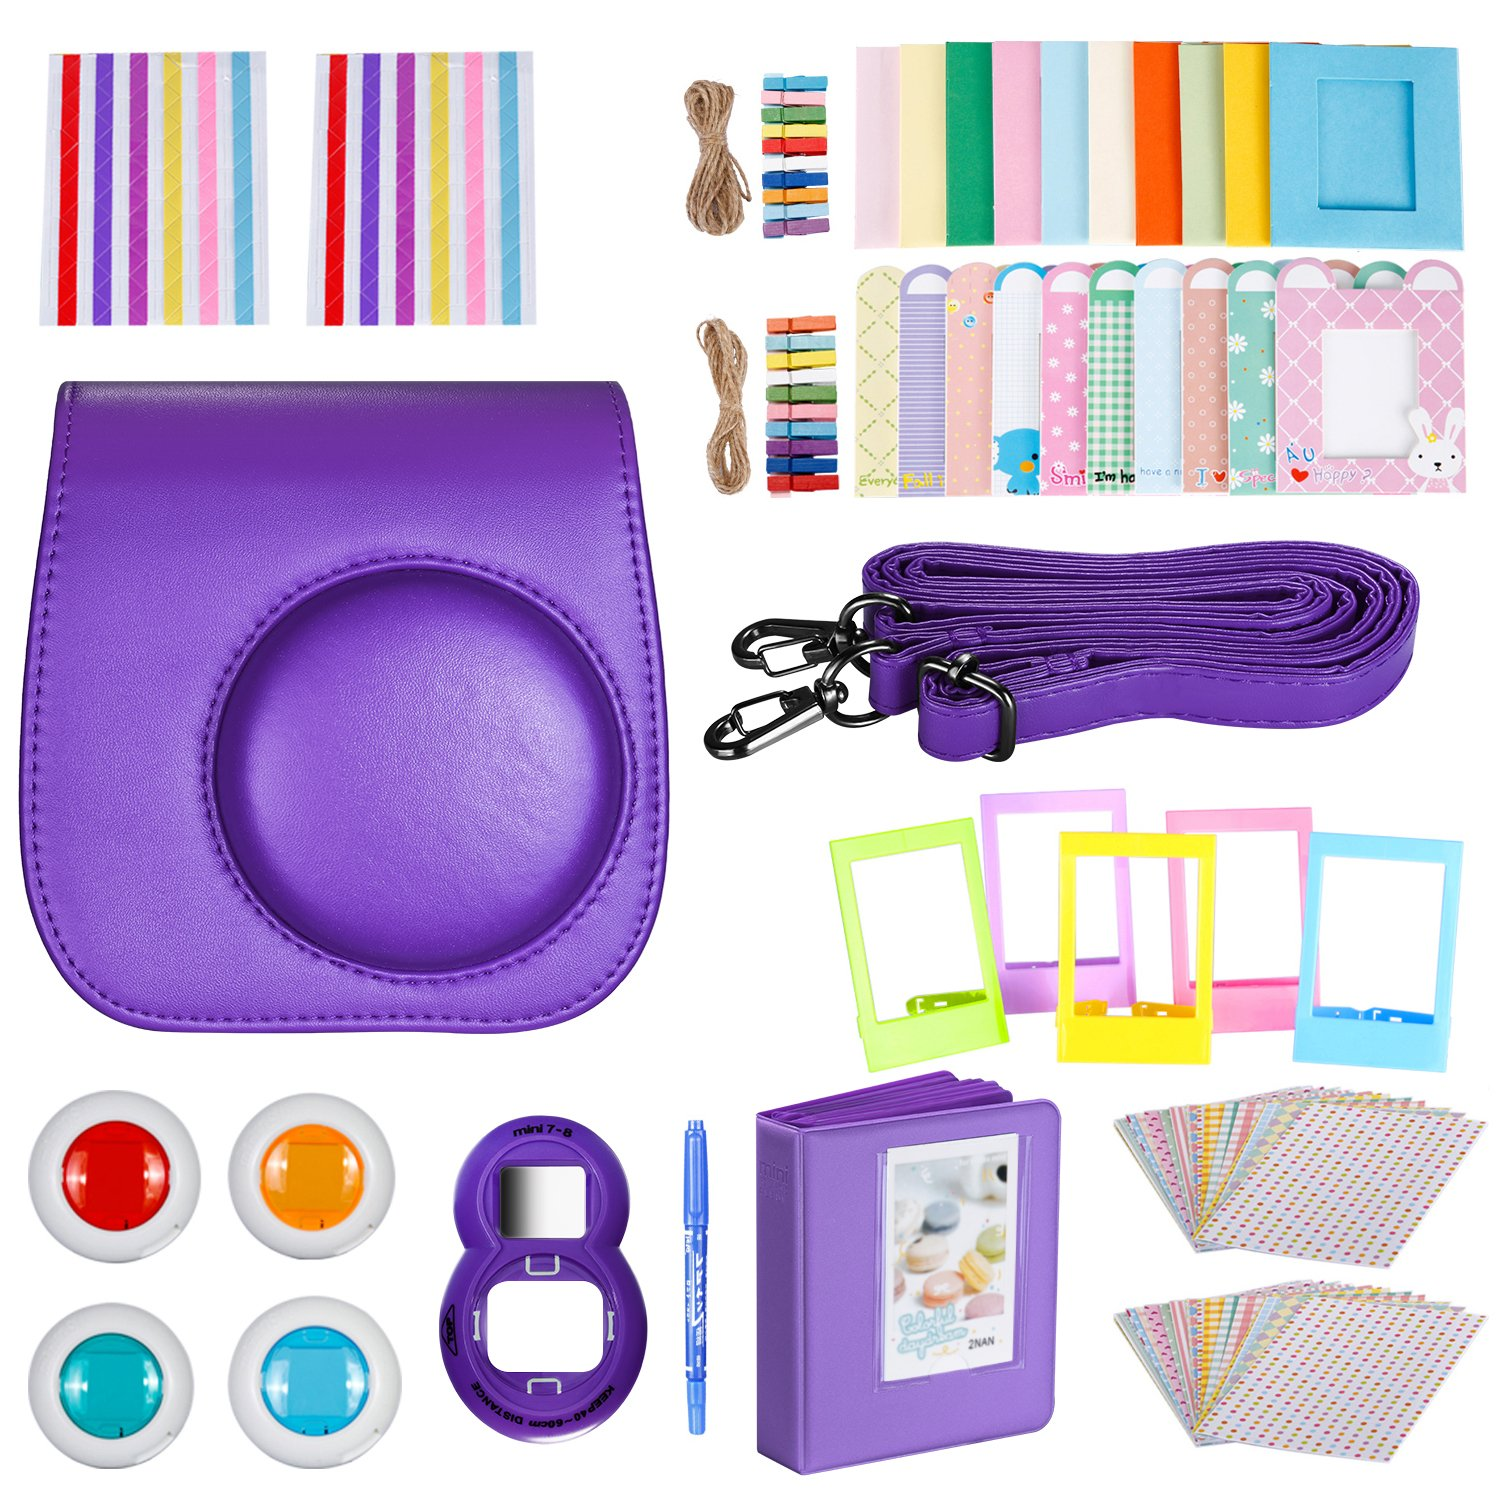 Neewer Purple 10 in 1 Accessories Kit For Fujifilm Instax Mini 8/8s: Camera Case; Album; Selfie Lens; 4 Colored Filter;5 Film Table Frame;20 Wall Hanging Frame;40 Border Sticker;2 Corner Sticker;Pen by Neewer